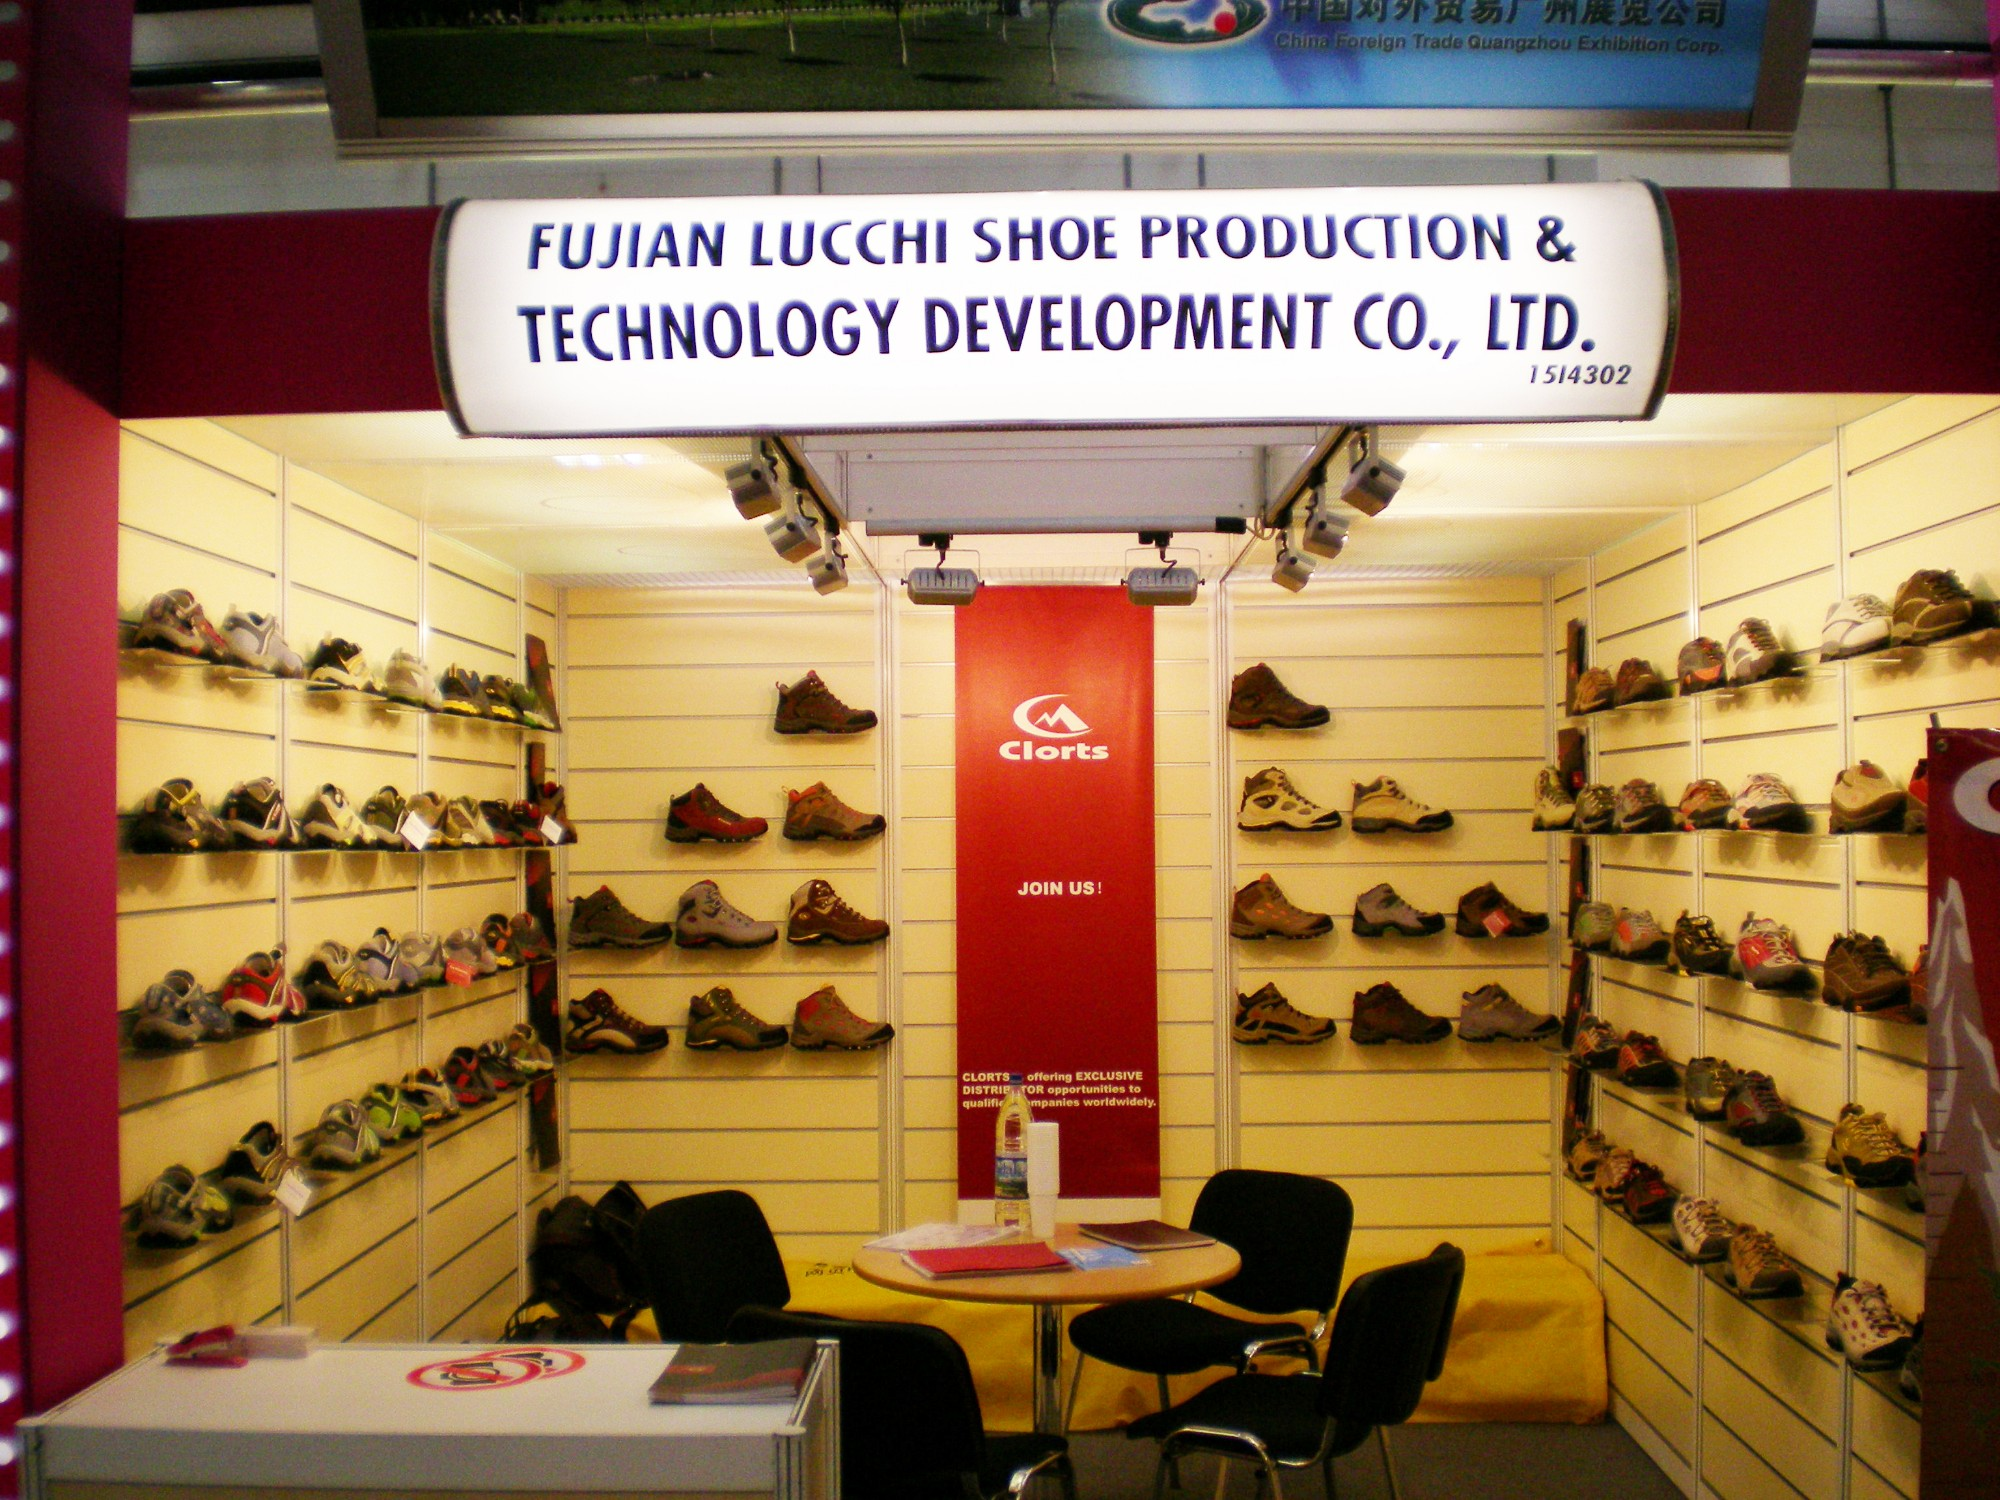 September Germany Dusseldorf International Footwear Fair